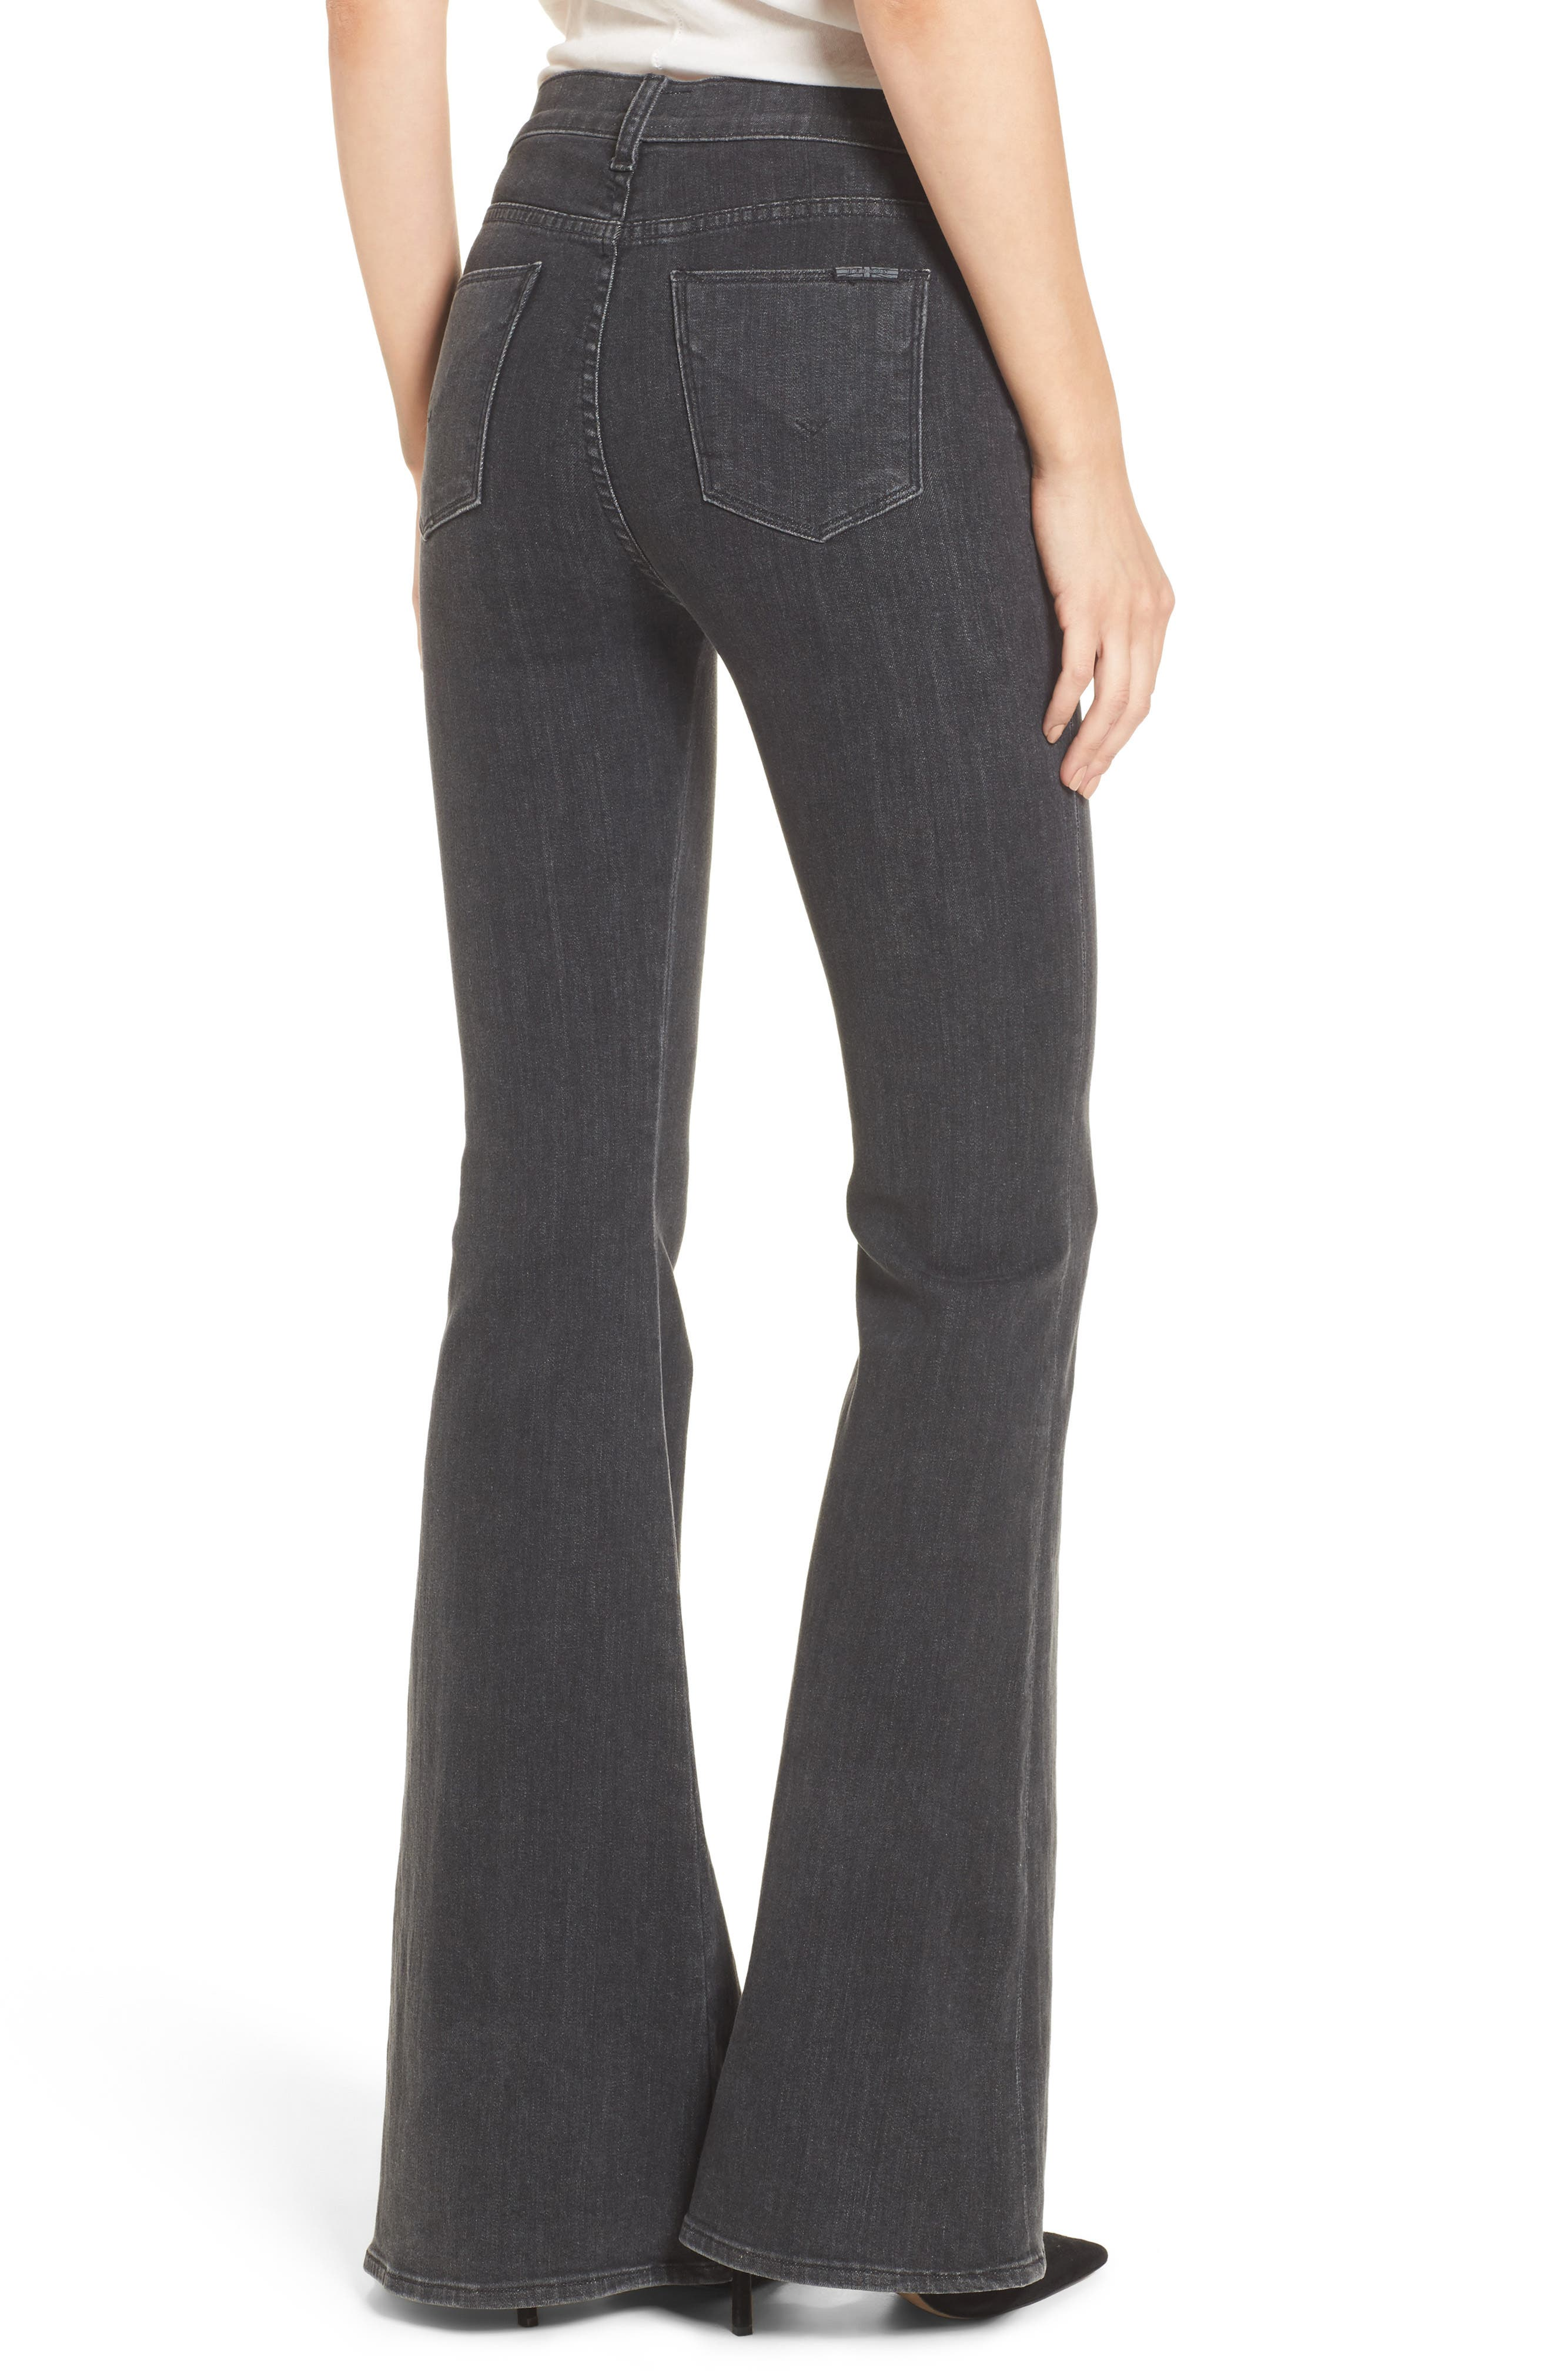 Bullocks High Waist Lace-Up Flare Jeans,                             Alternate thumbnail 2, color,                             Disarm